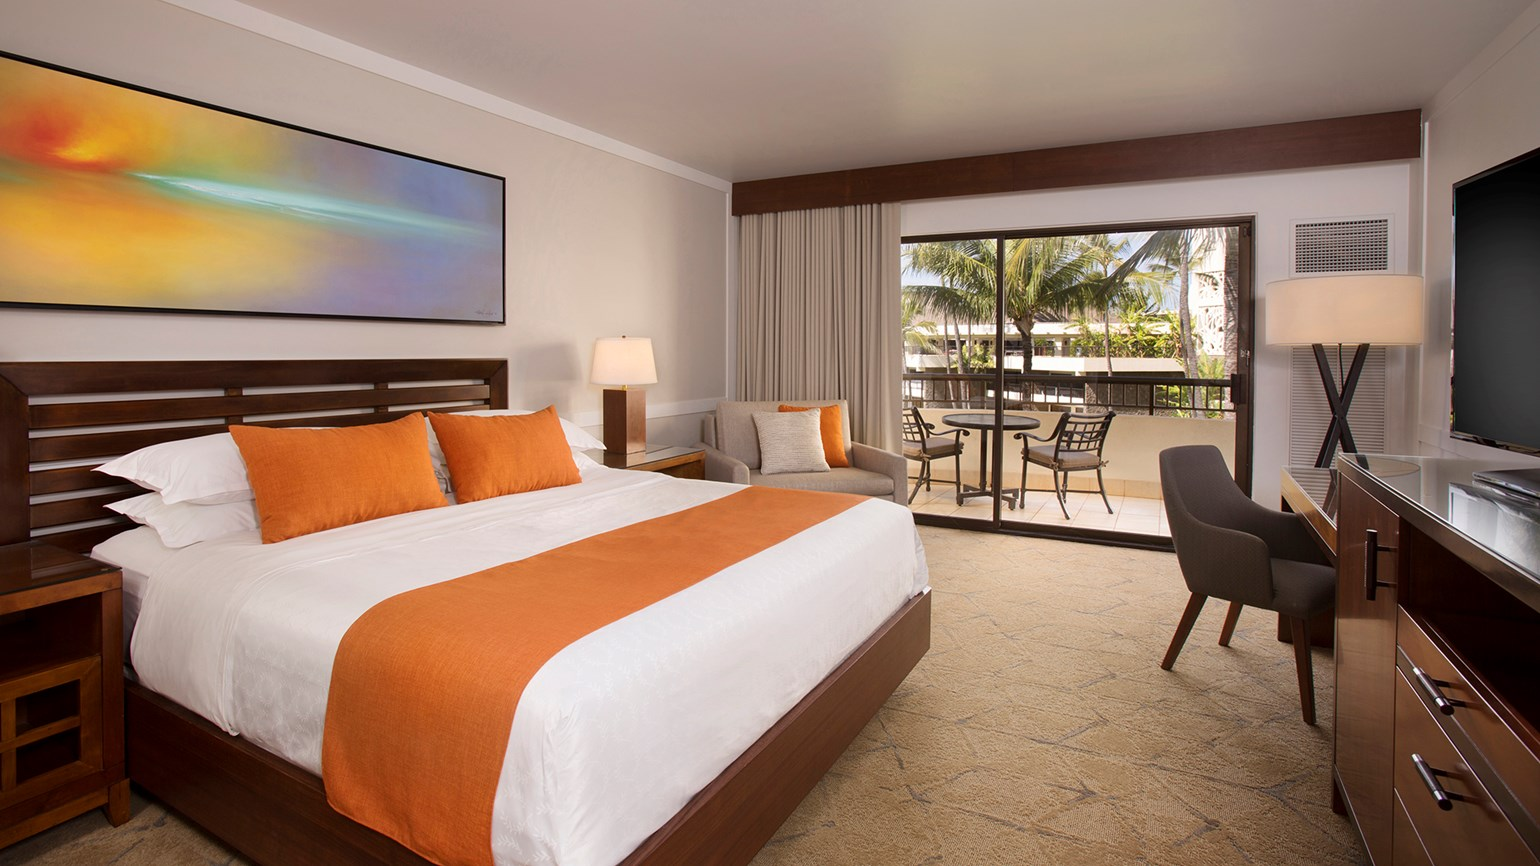 Maui County's islands inspire Sheraton room refurb